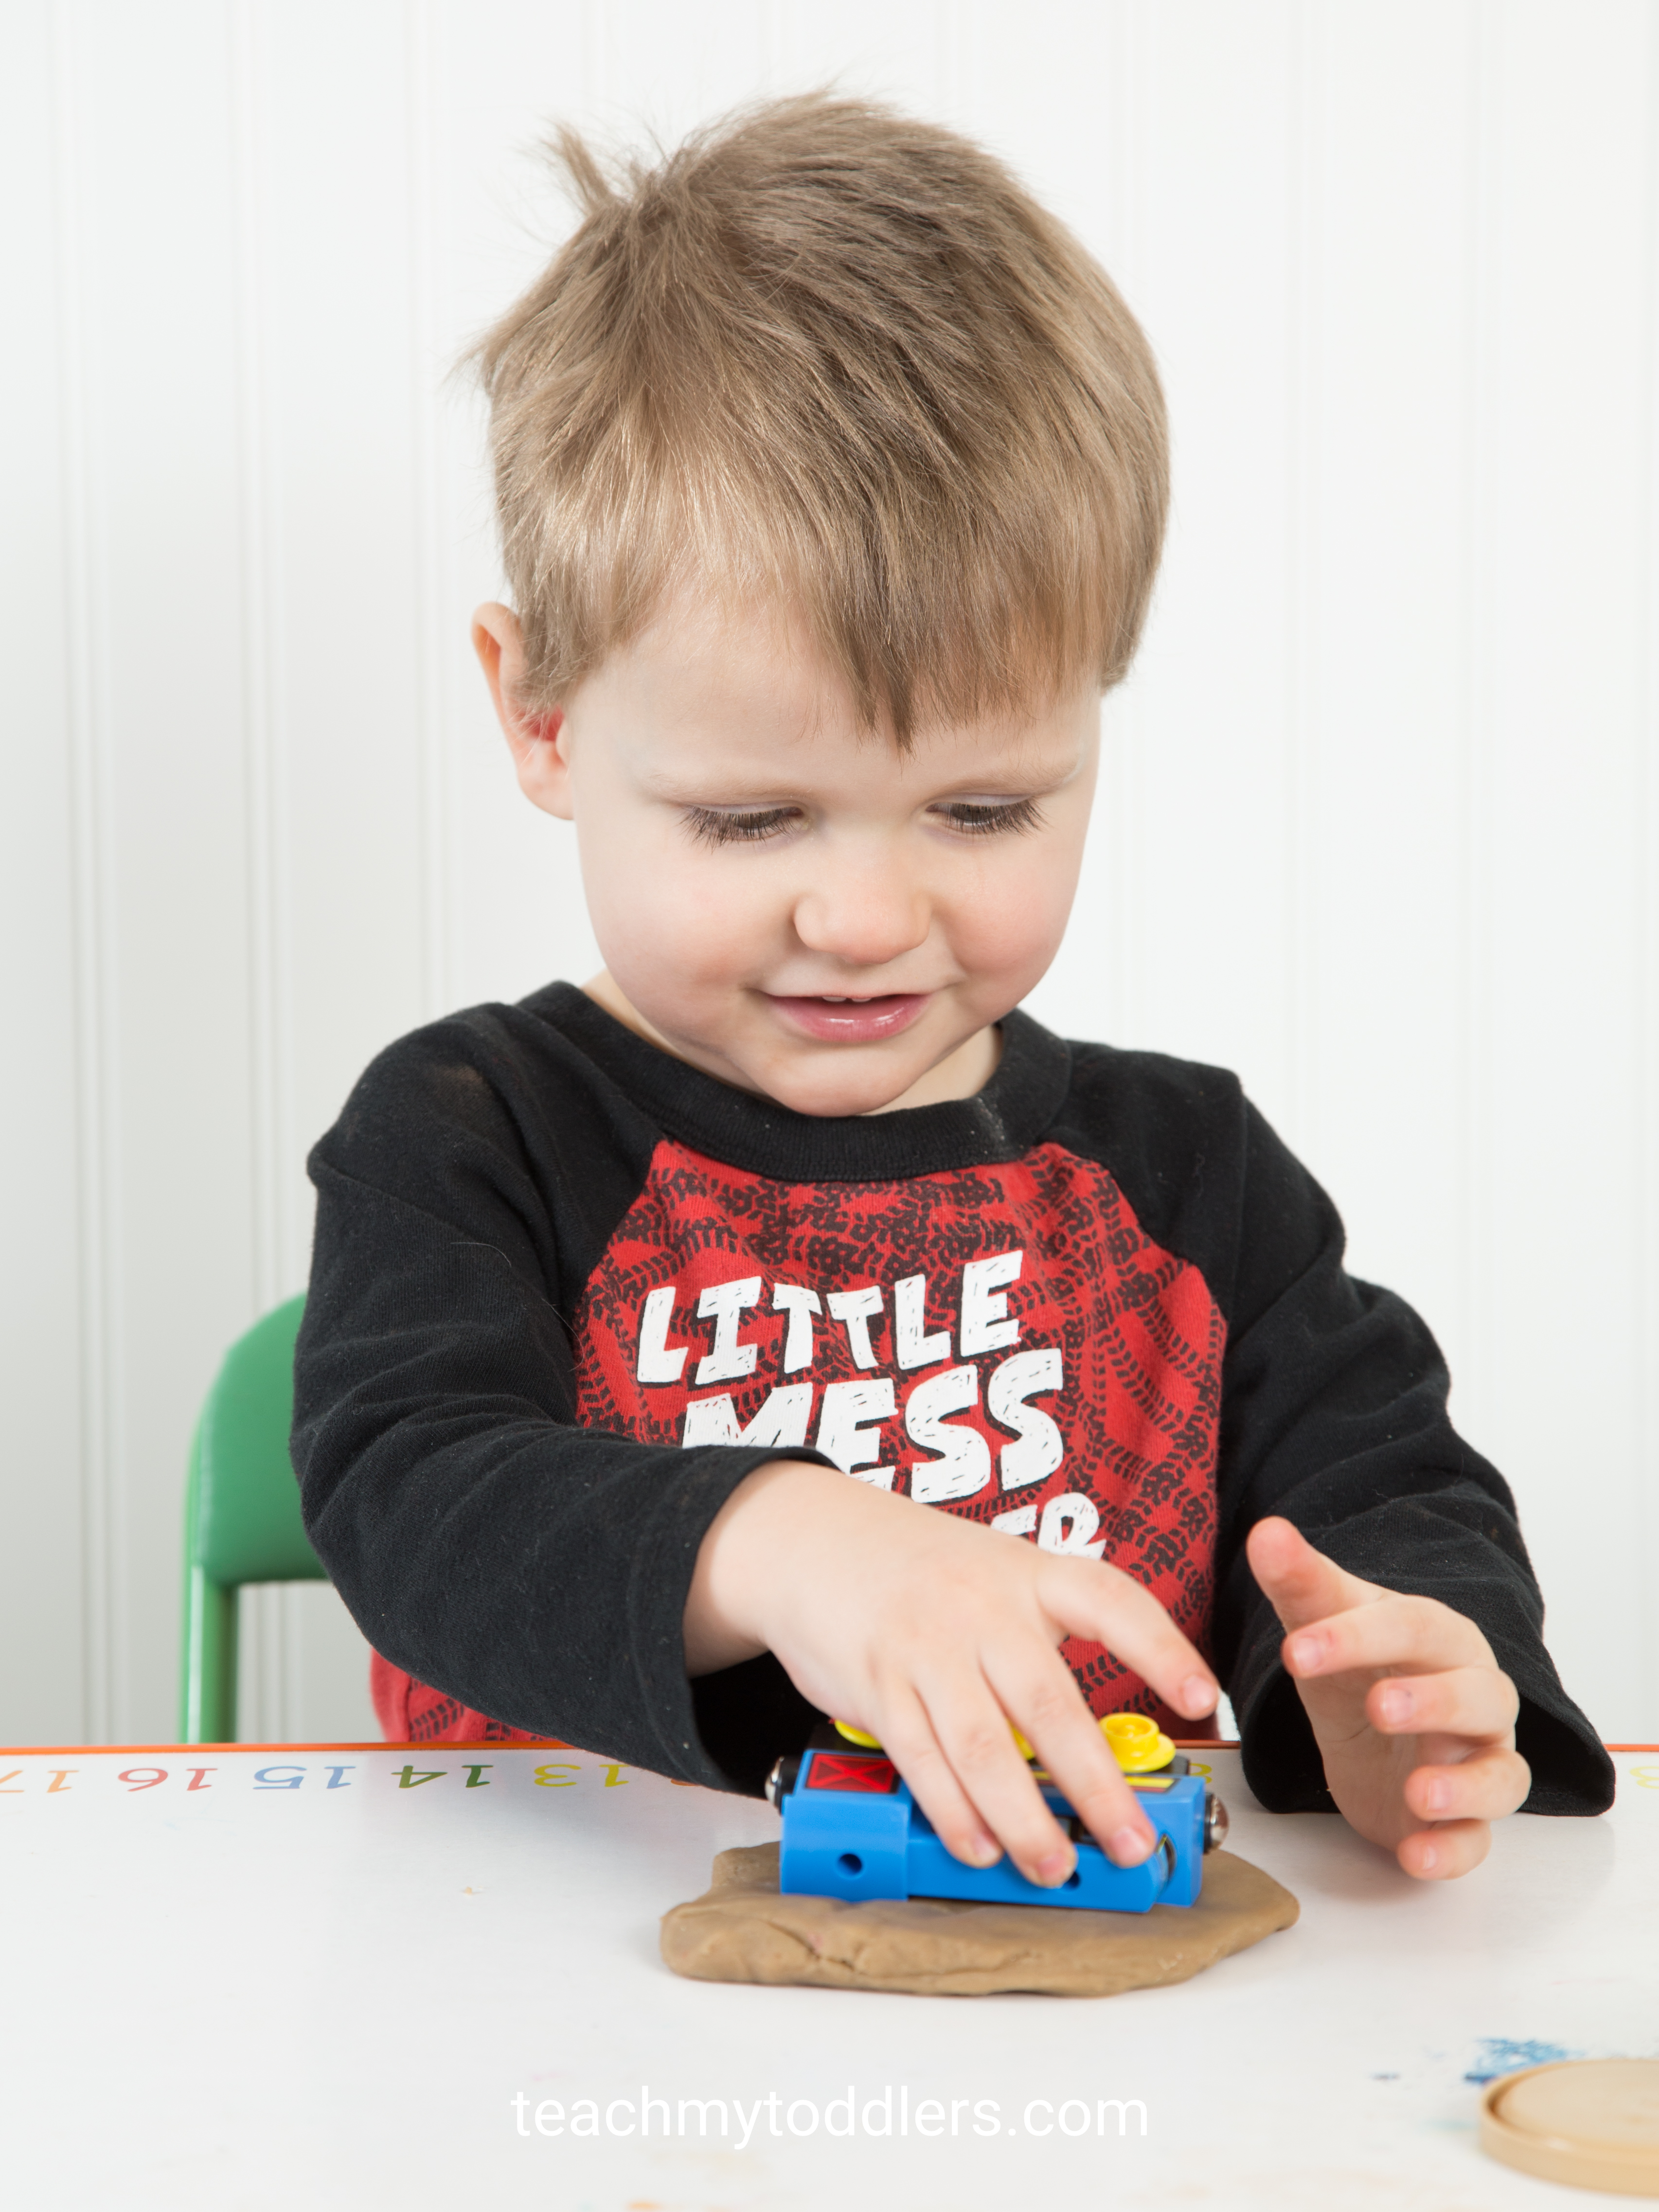 These unique e is for extinct activities are great to teach toddler the letter e